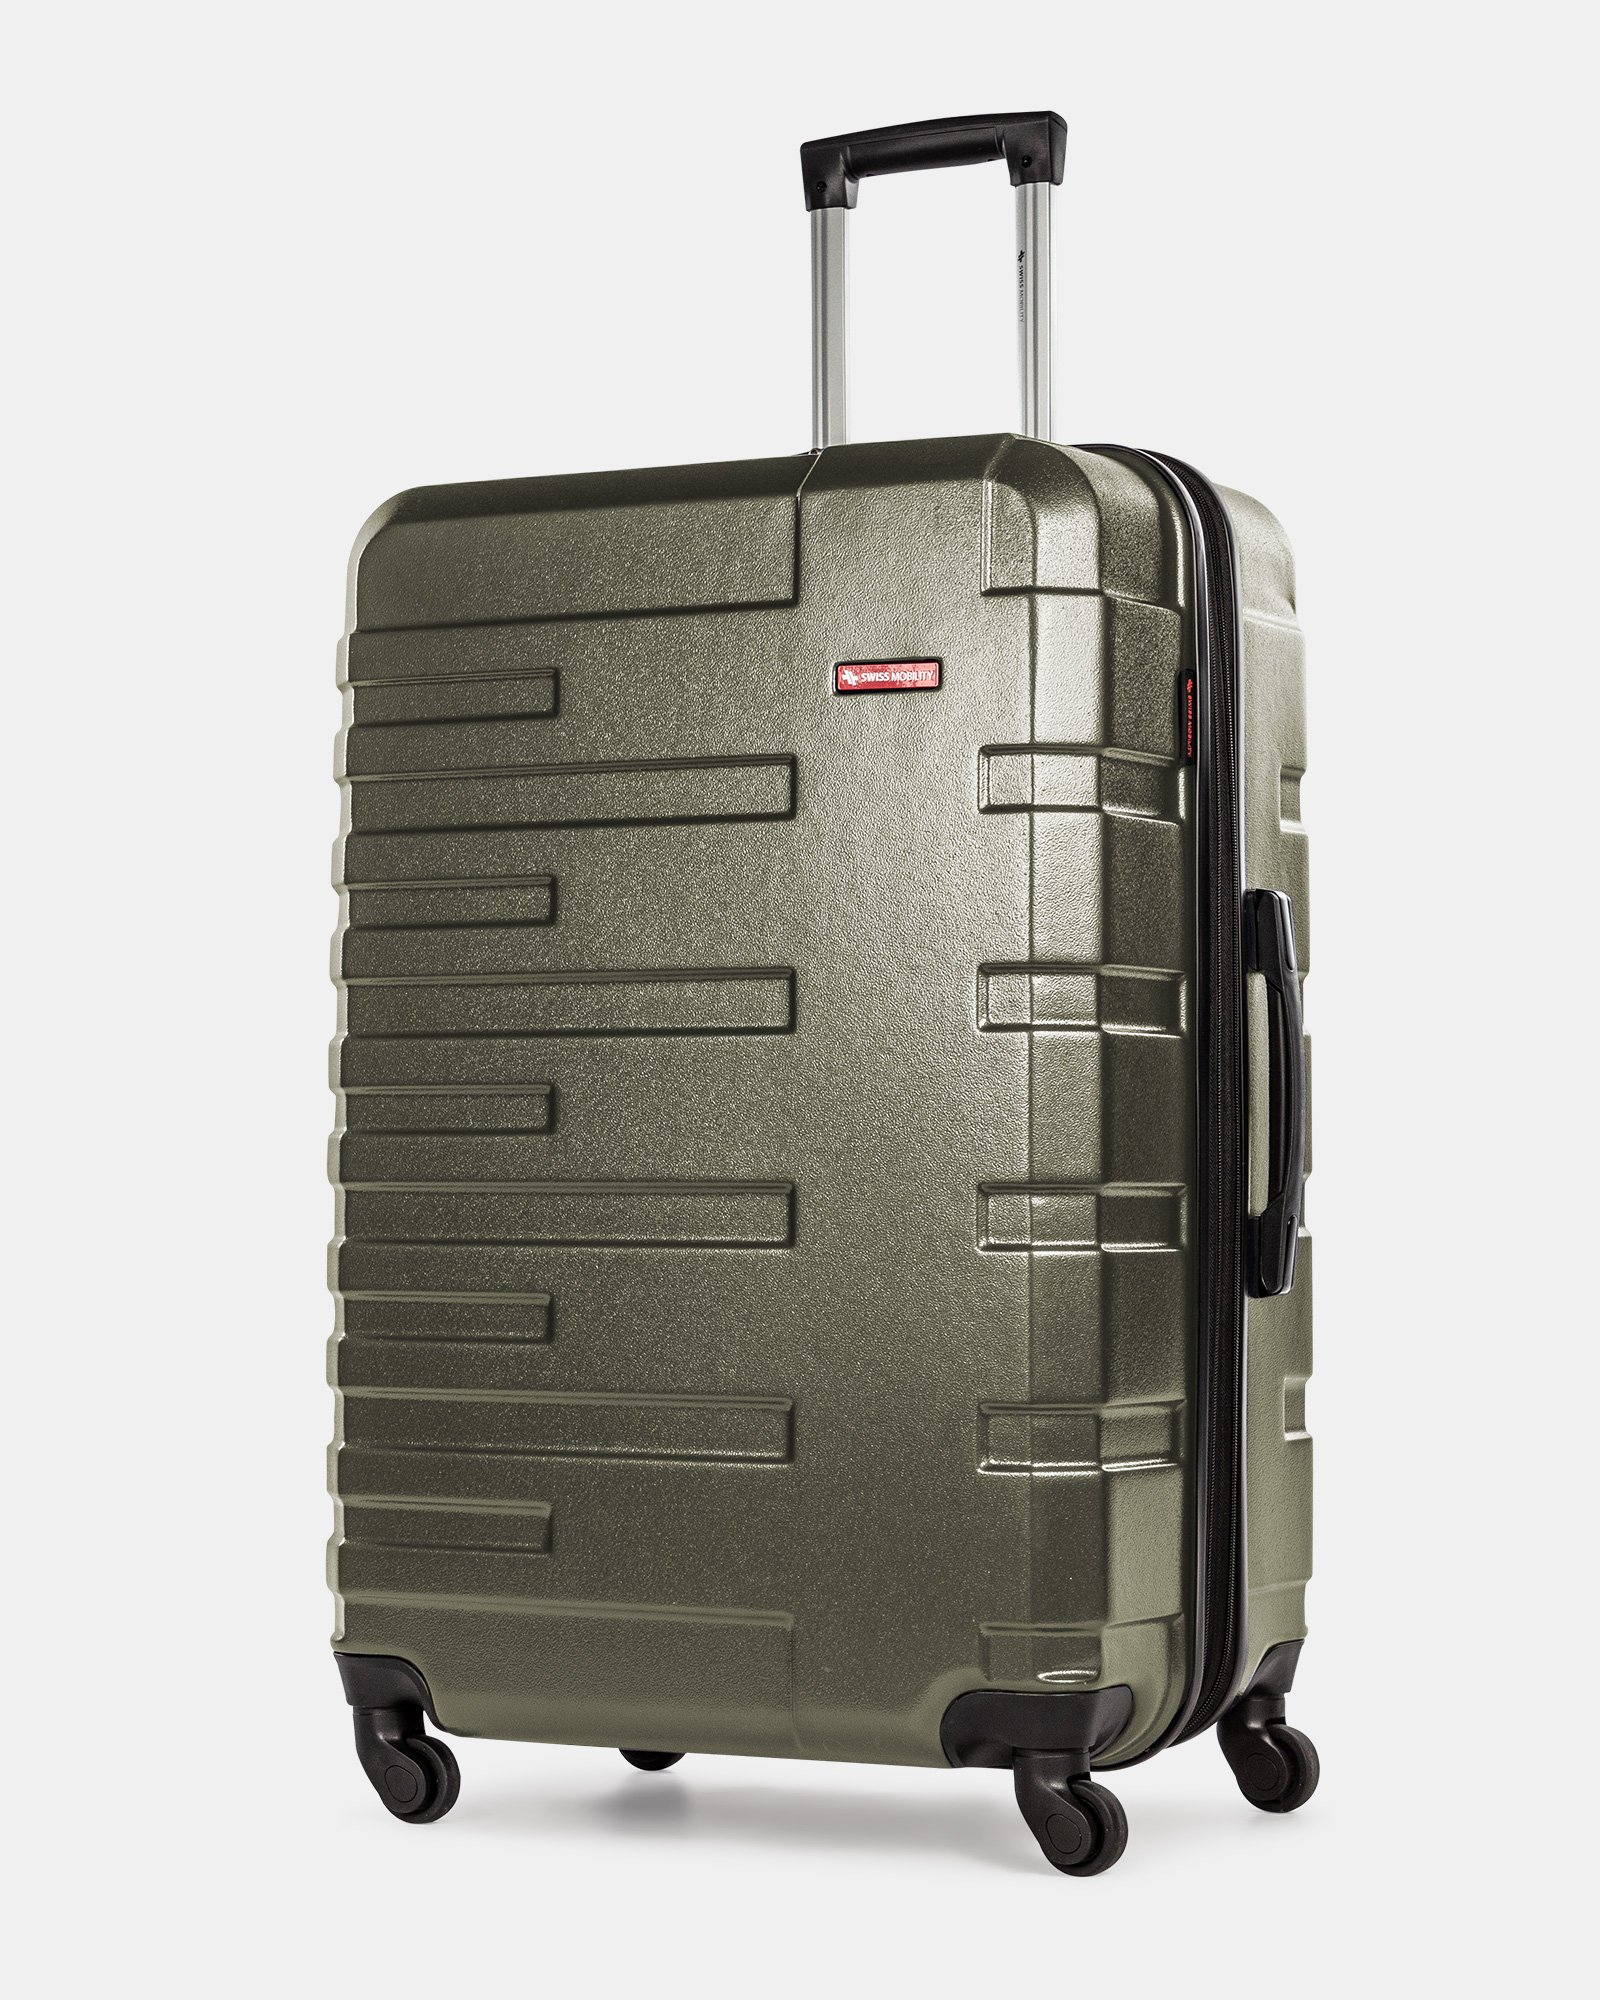 Quad  - Lightweight Hardside Luggage 28'' with Spinner wheels - Olive  - Swiss Mobility - Zoom